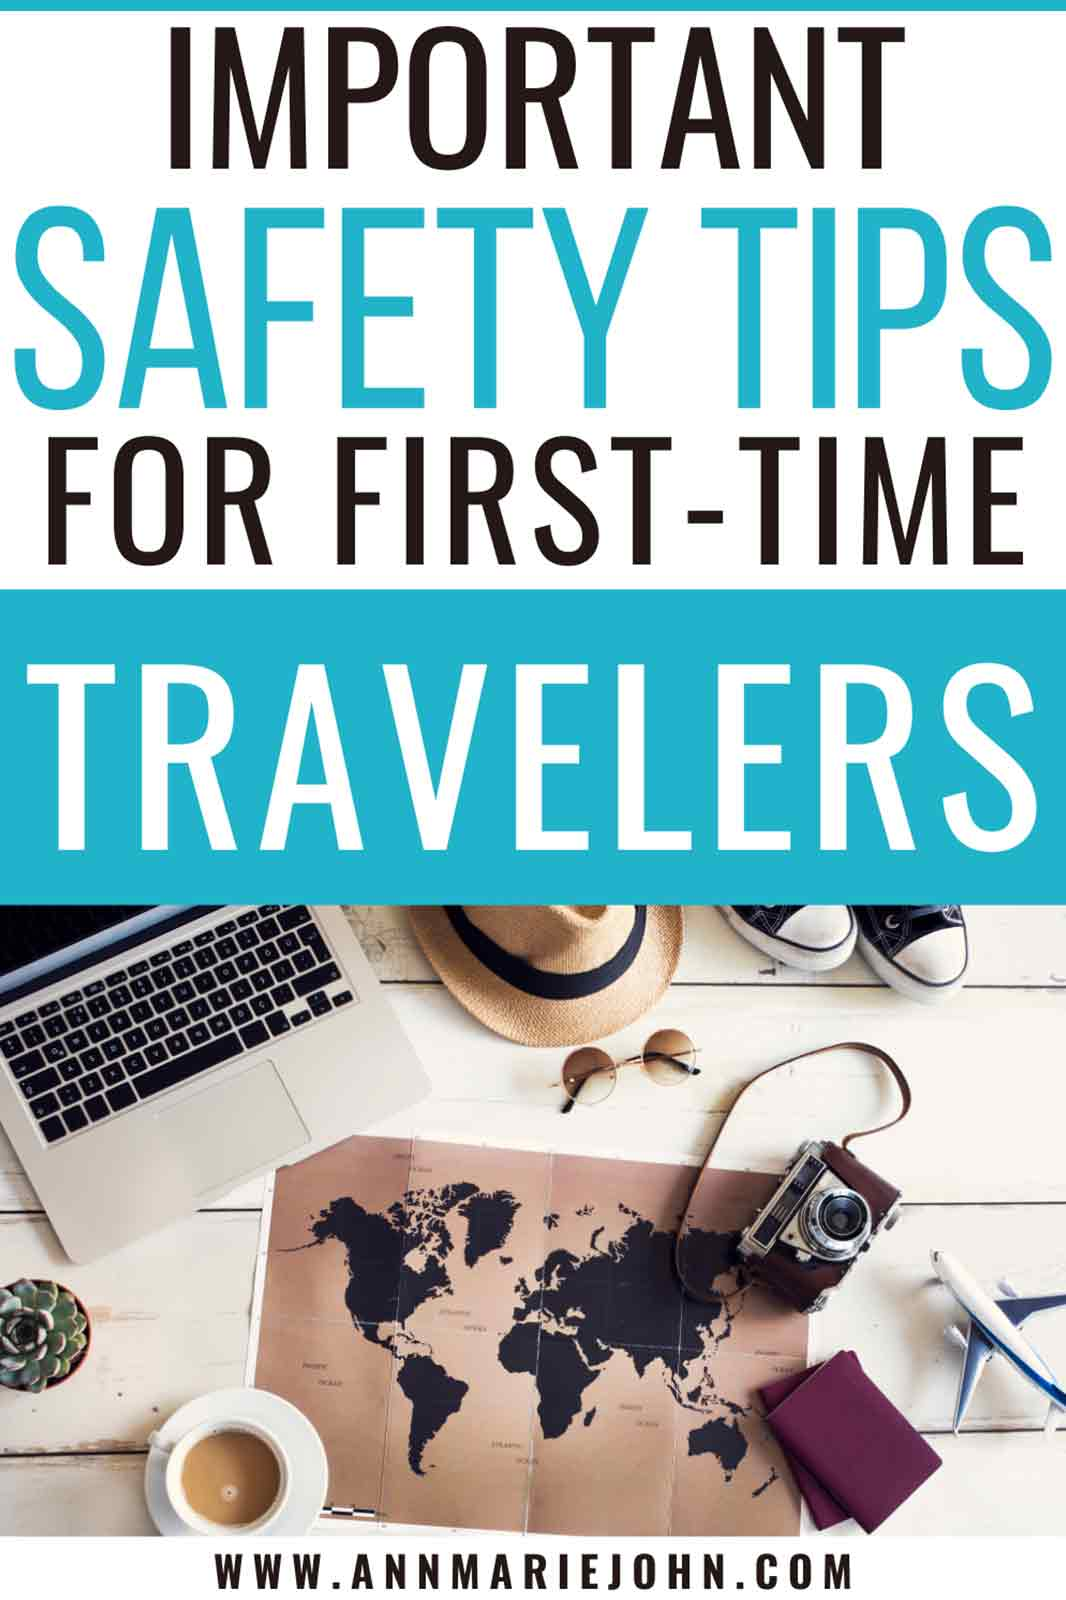 Important Safety Tips for First Time Travelers